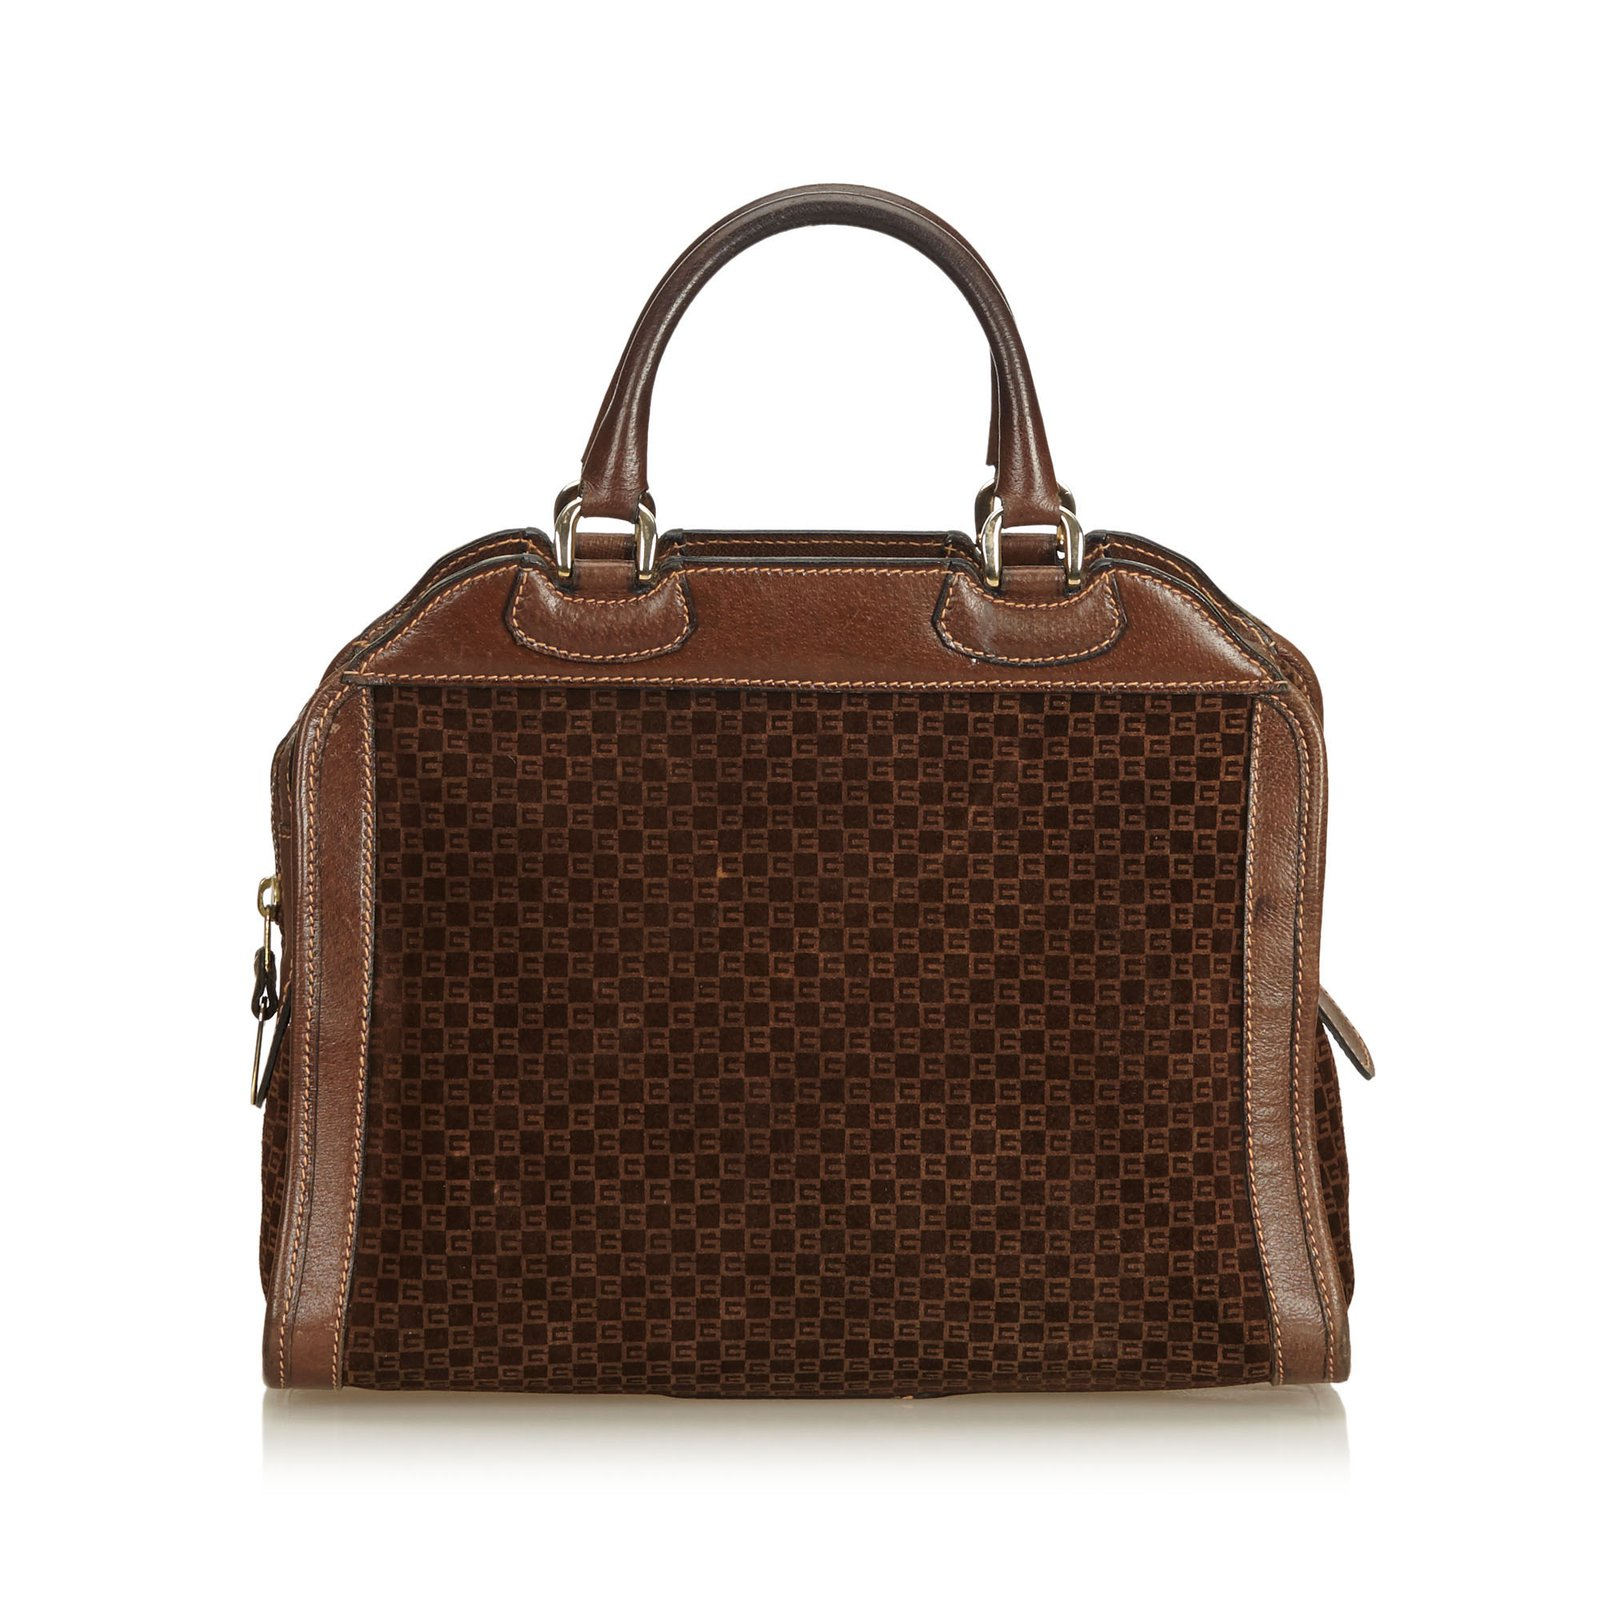 d5d5958ccd1d80 Gucci Old Gucci Suede Handbag Handbags Suede,Leather,Other Brown,Dark brown  ref